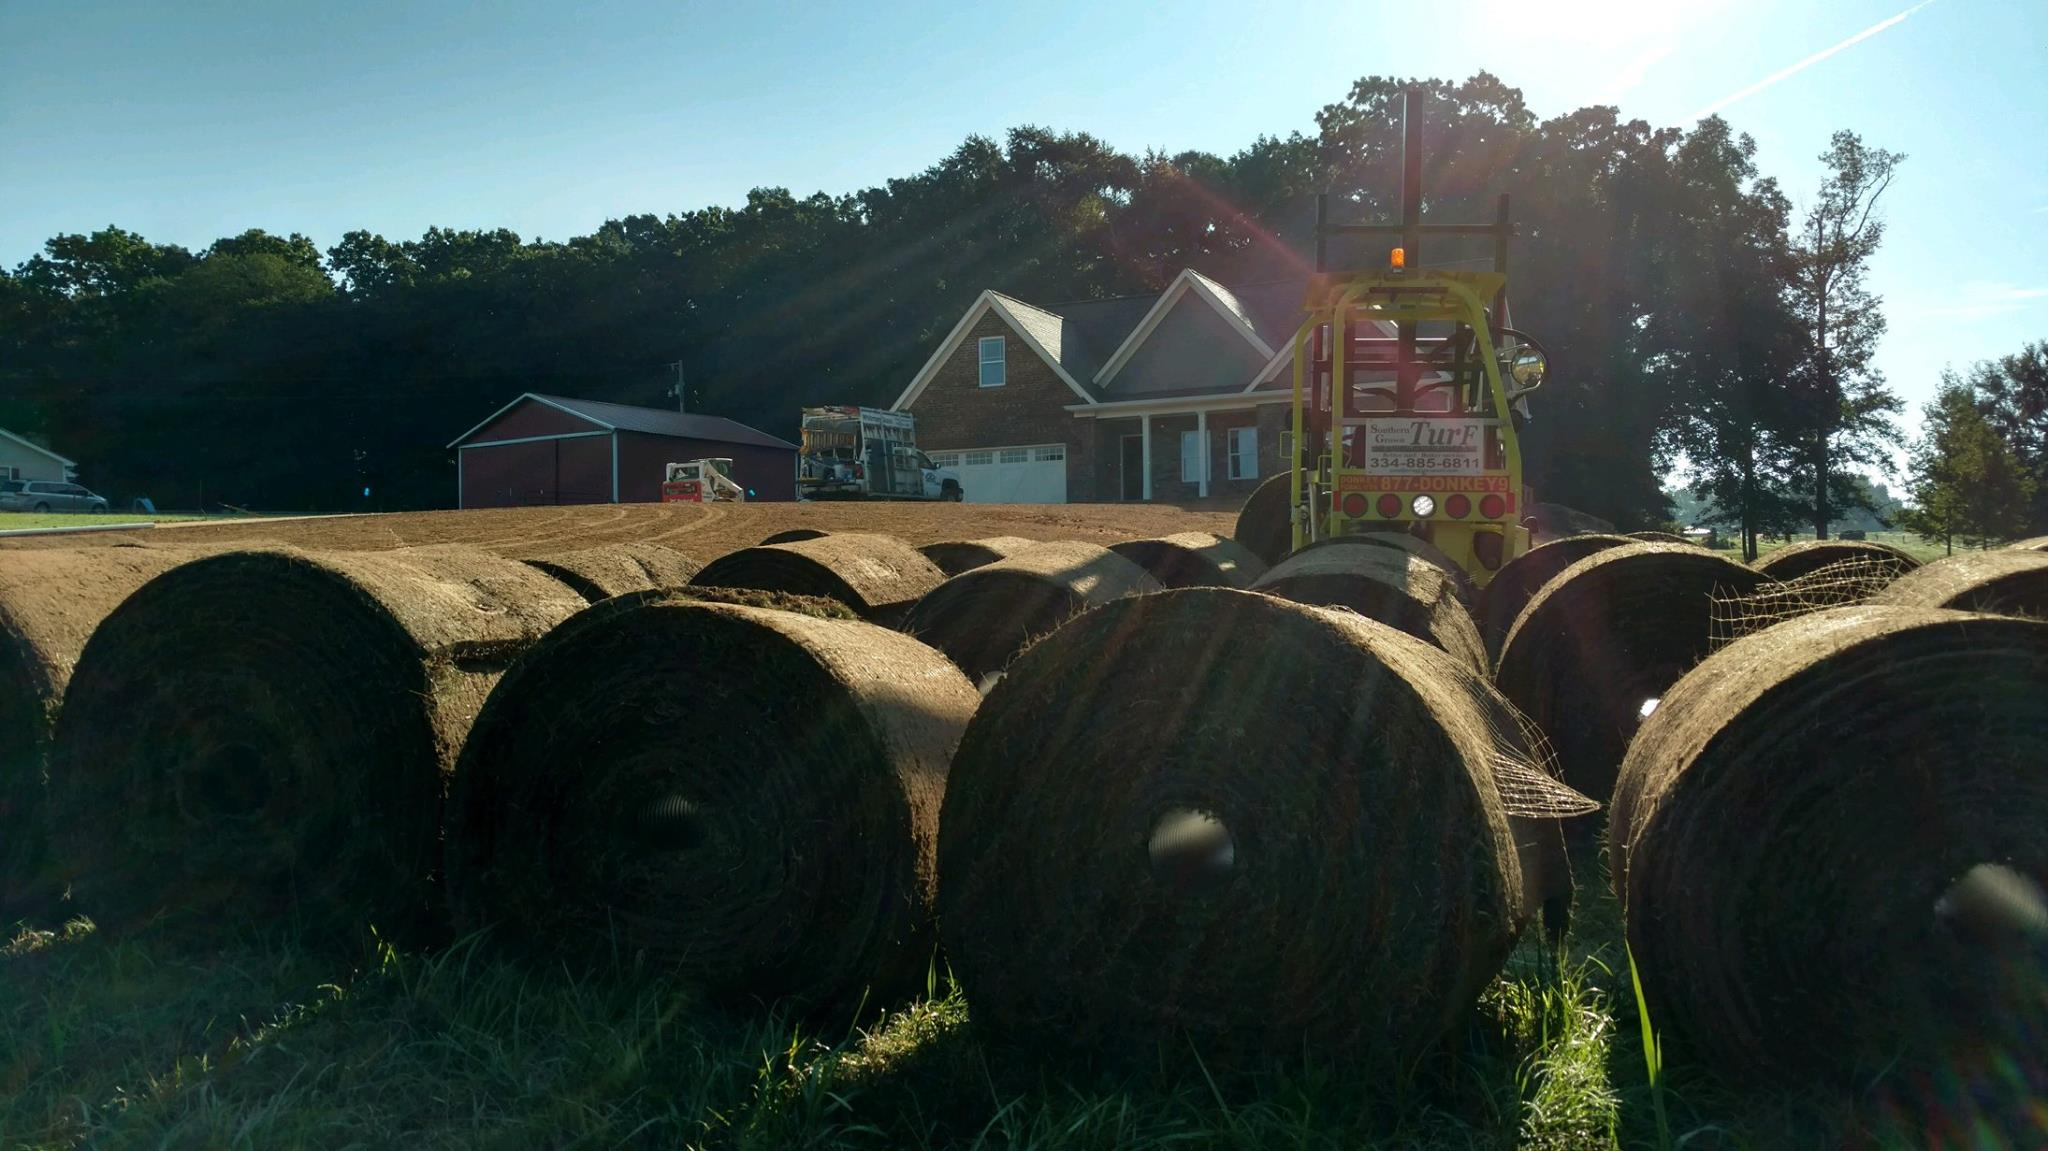 rolls of turf, harvested and ready to sell